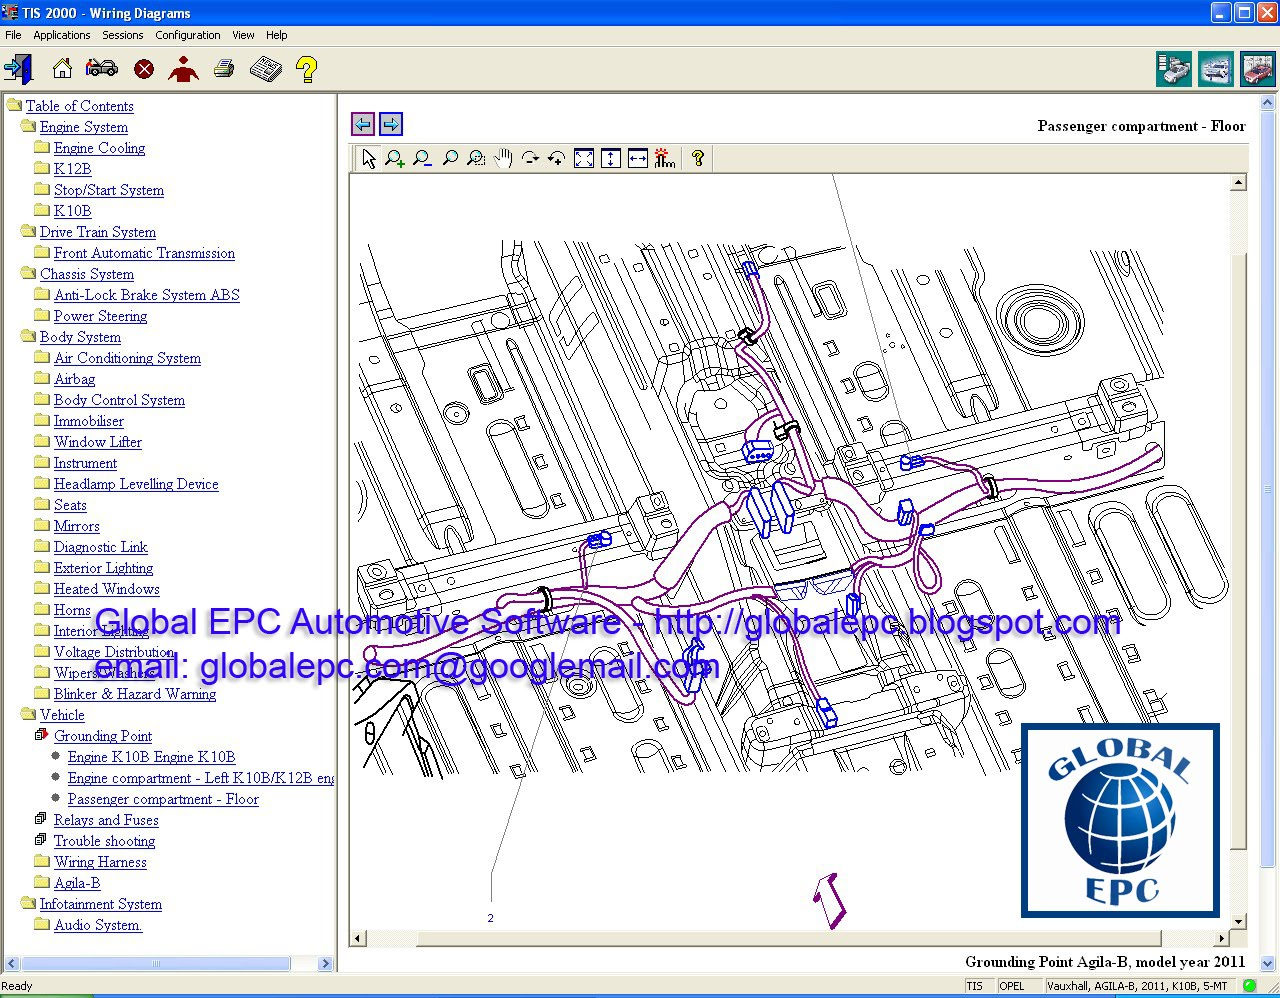 hight resolution of global epc automotive software opel vauxhall holden tis2000 tisopel vauxhall holden tis2000 tis 115 0 e